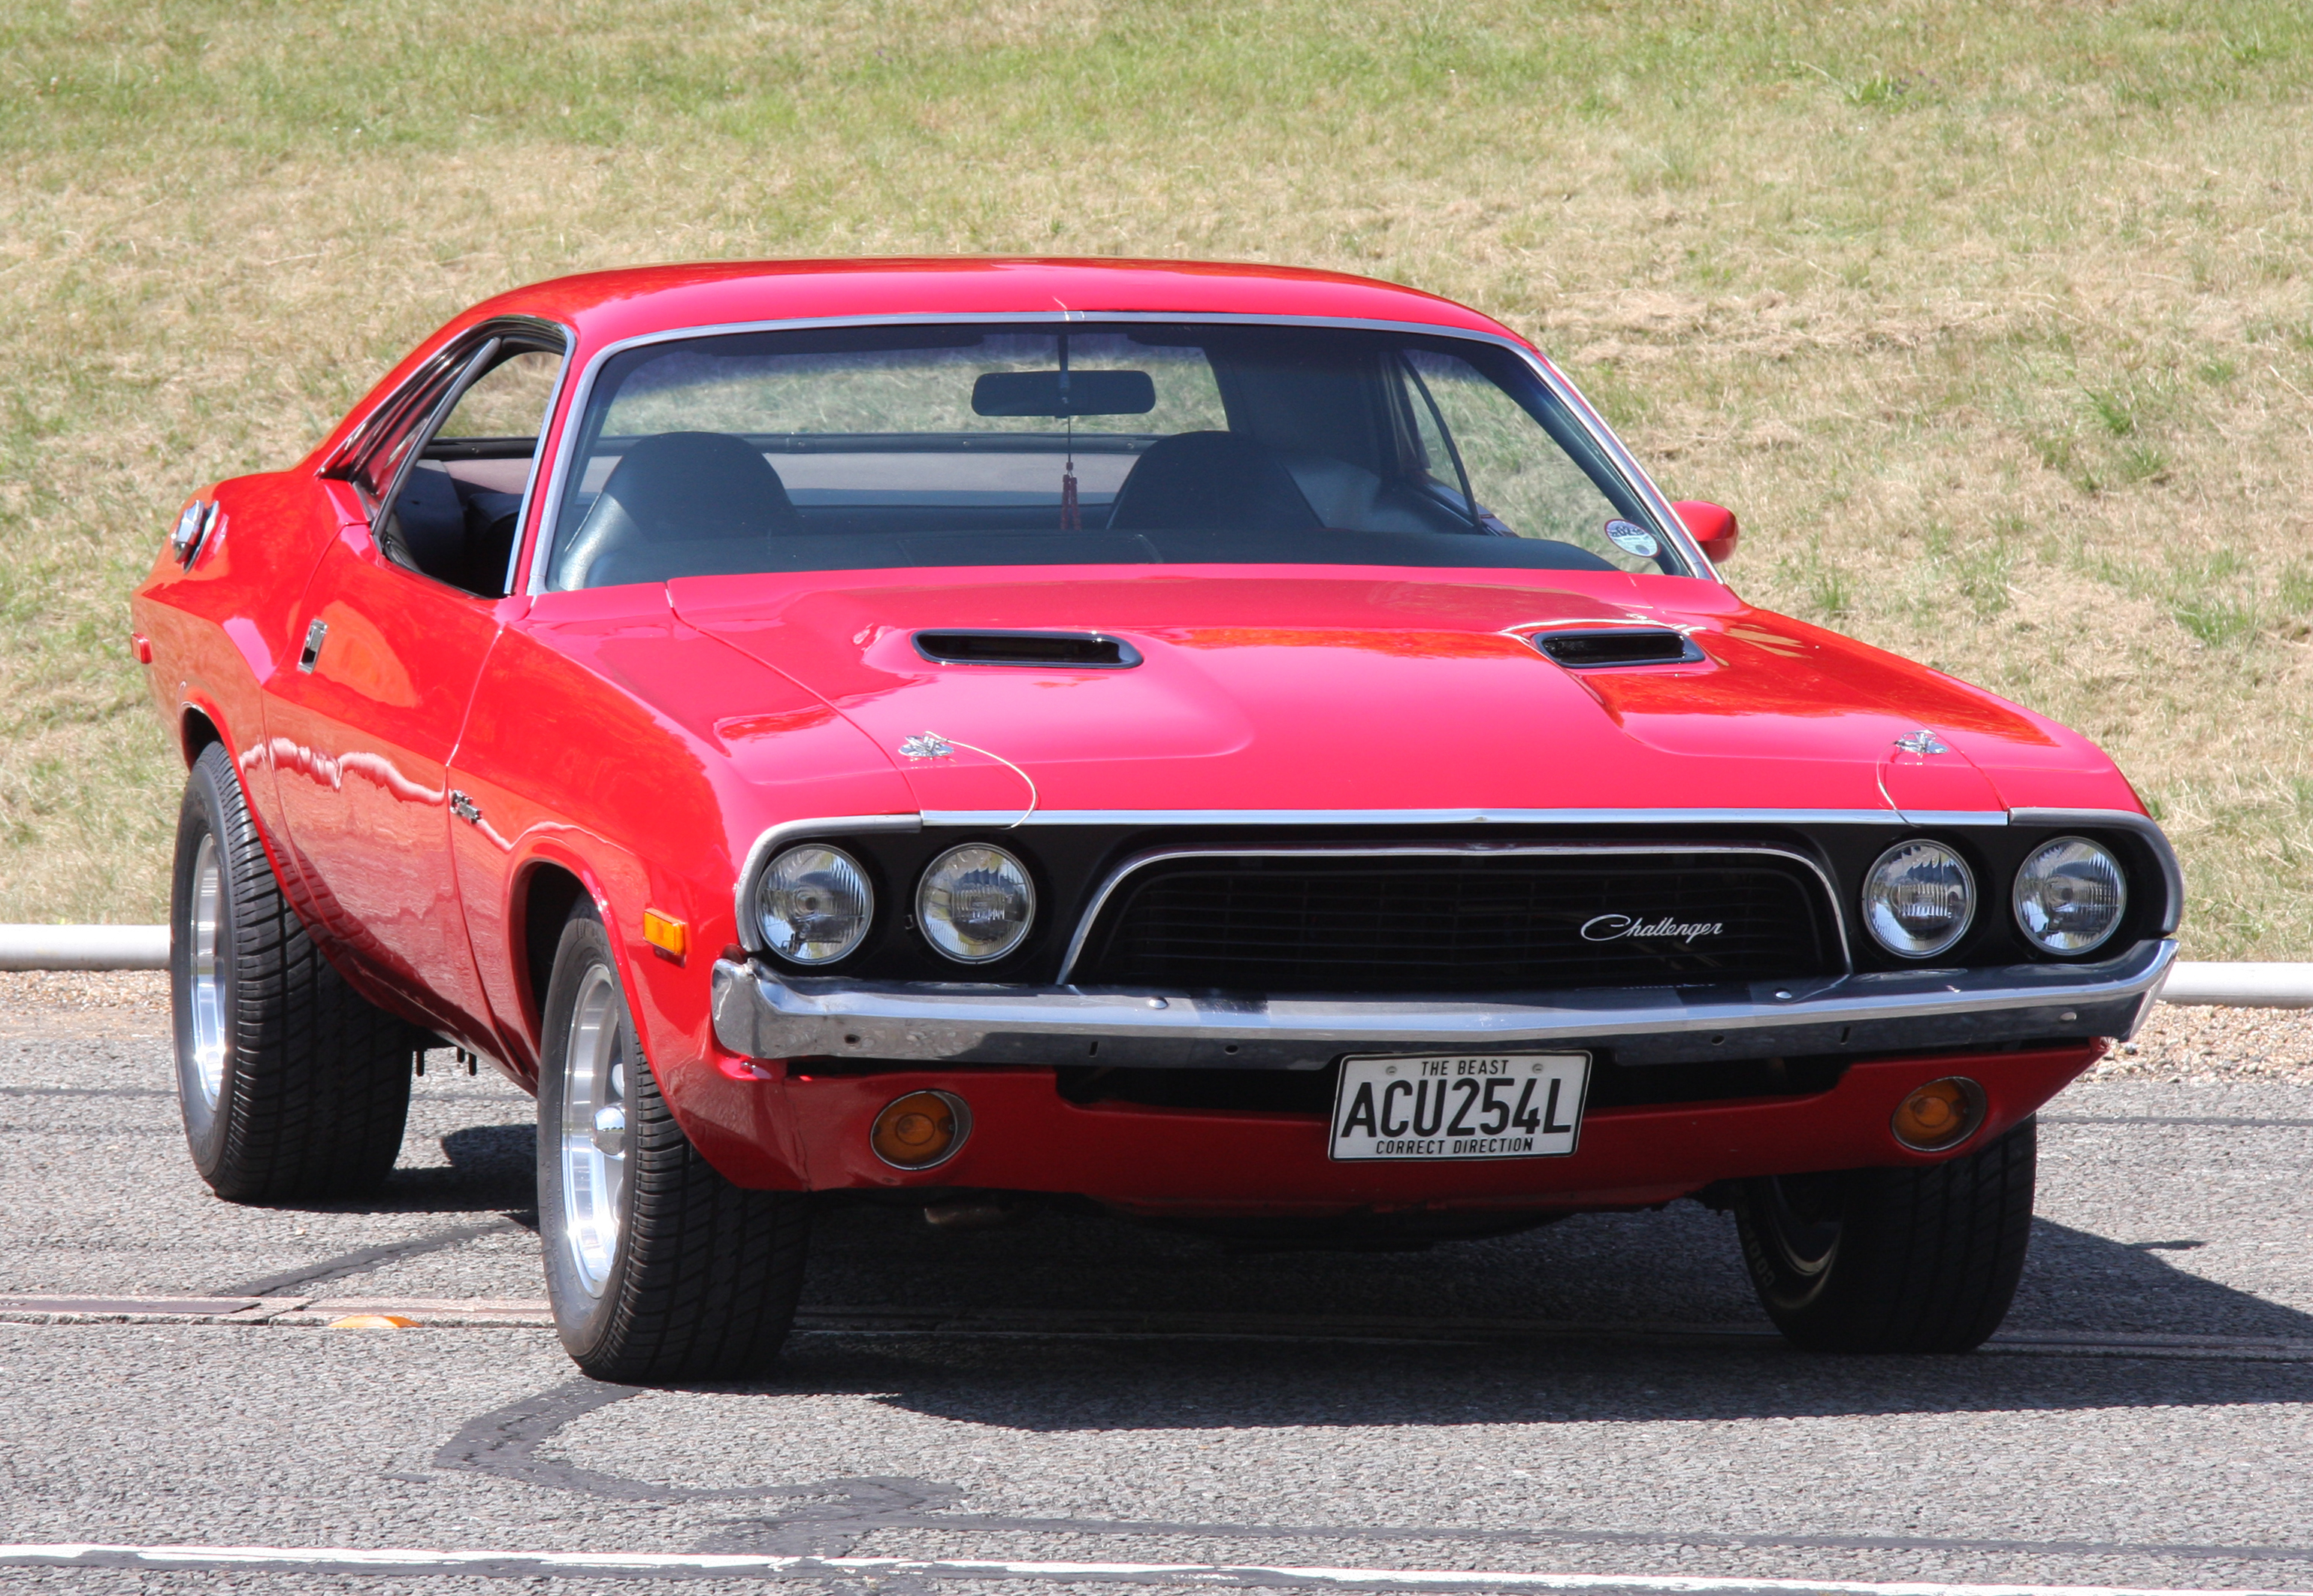 File:Dodge Challenger - Flickr - exfordy.jpg - Wikimedia Commons